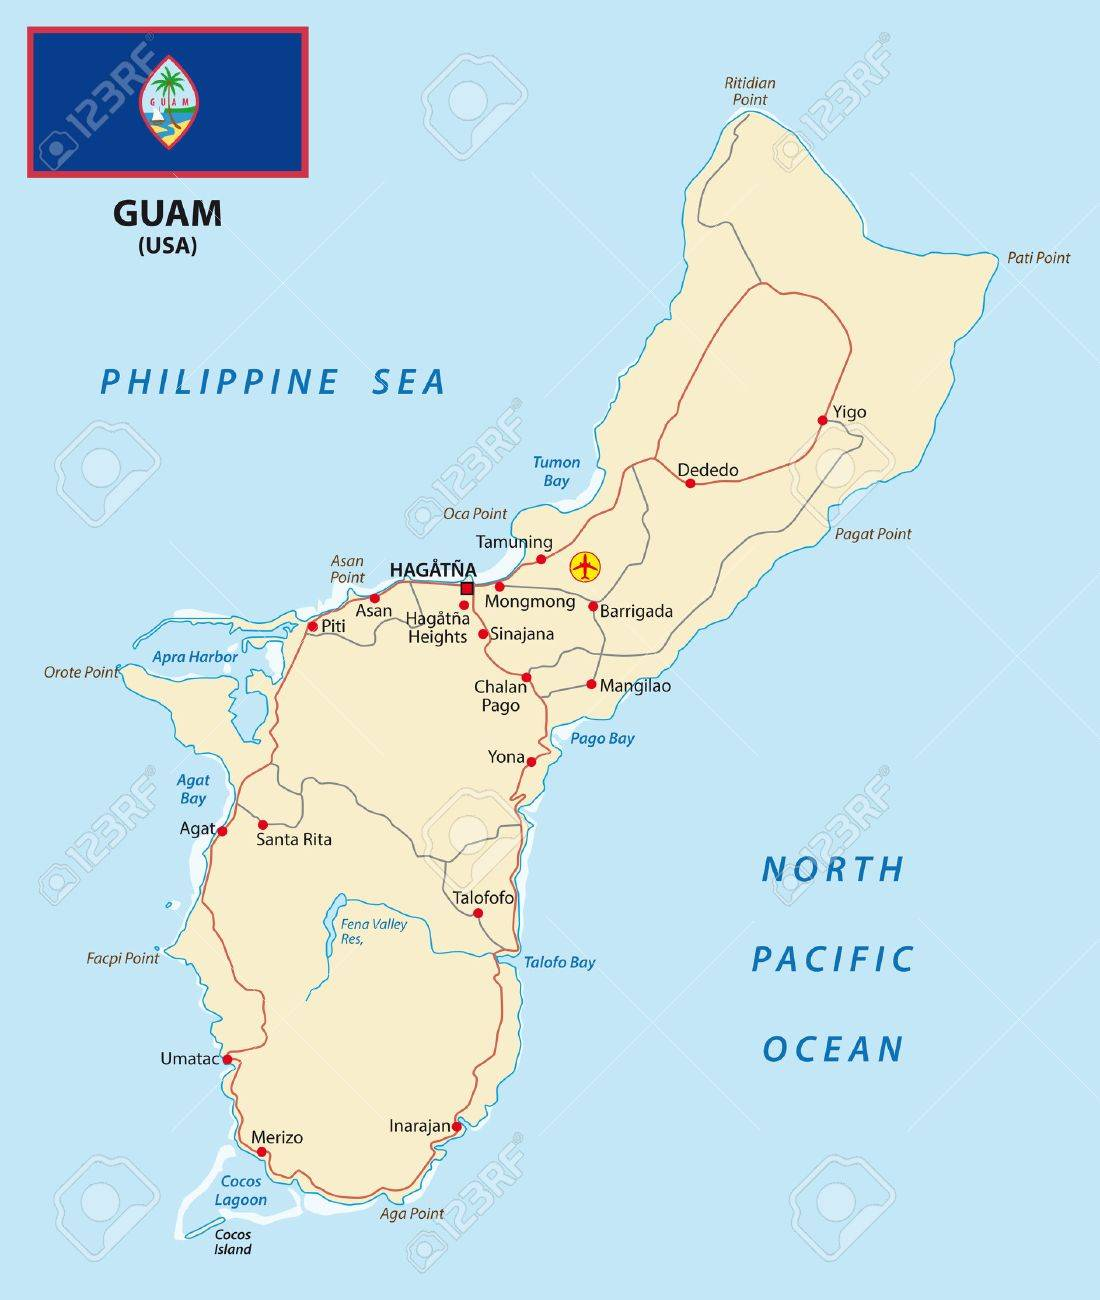 Guam Map With Flag Royalty Free Cliparts Vectors And Stock - Guam map